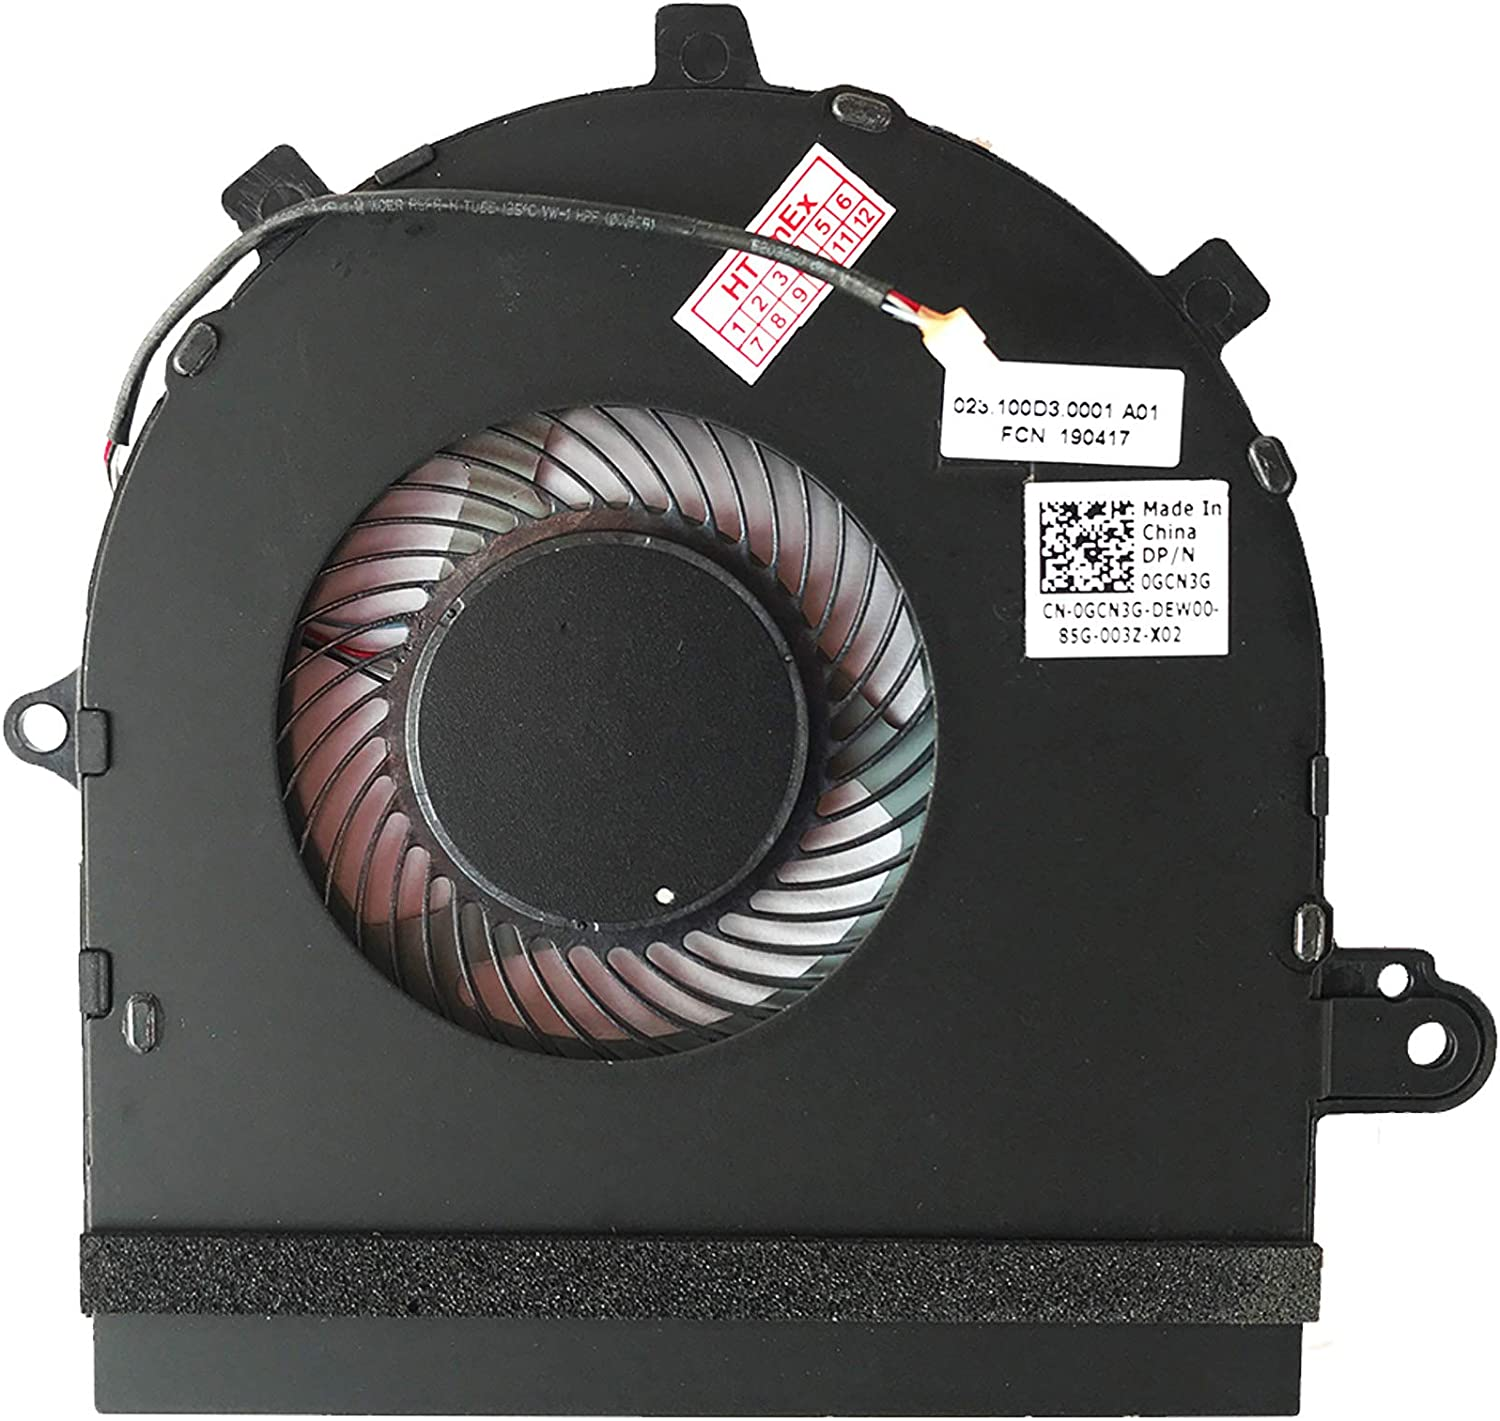 gaixample.org 17-7786 P36E 17-7786 Fan Cooler for Dell Inspiron 17 ...